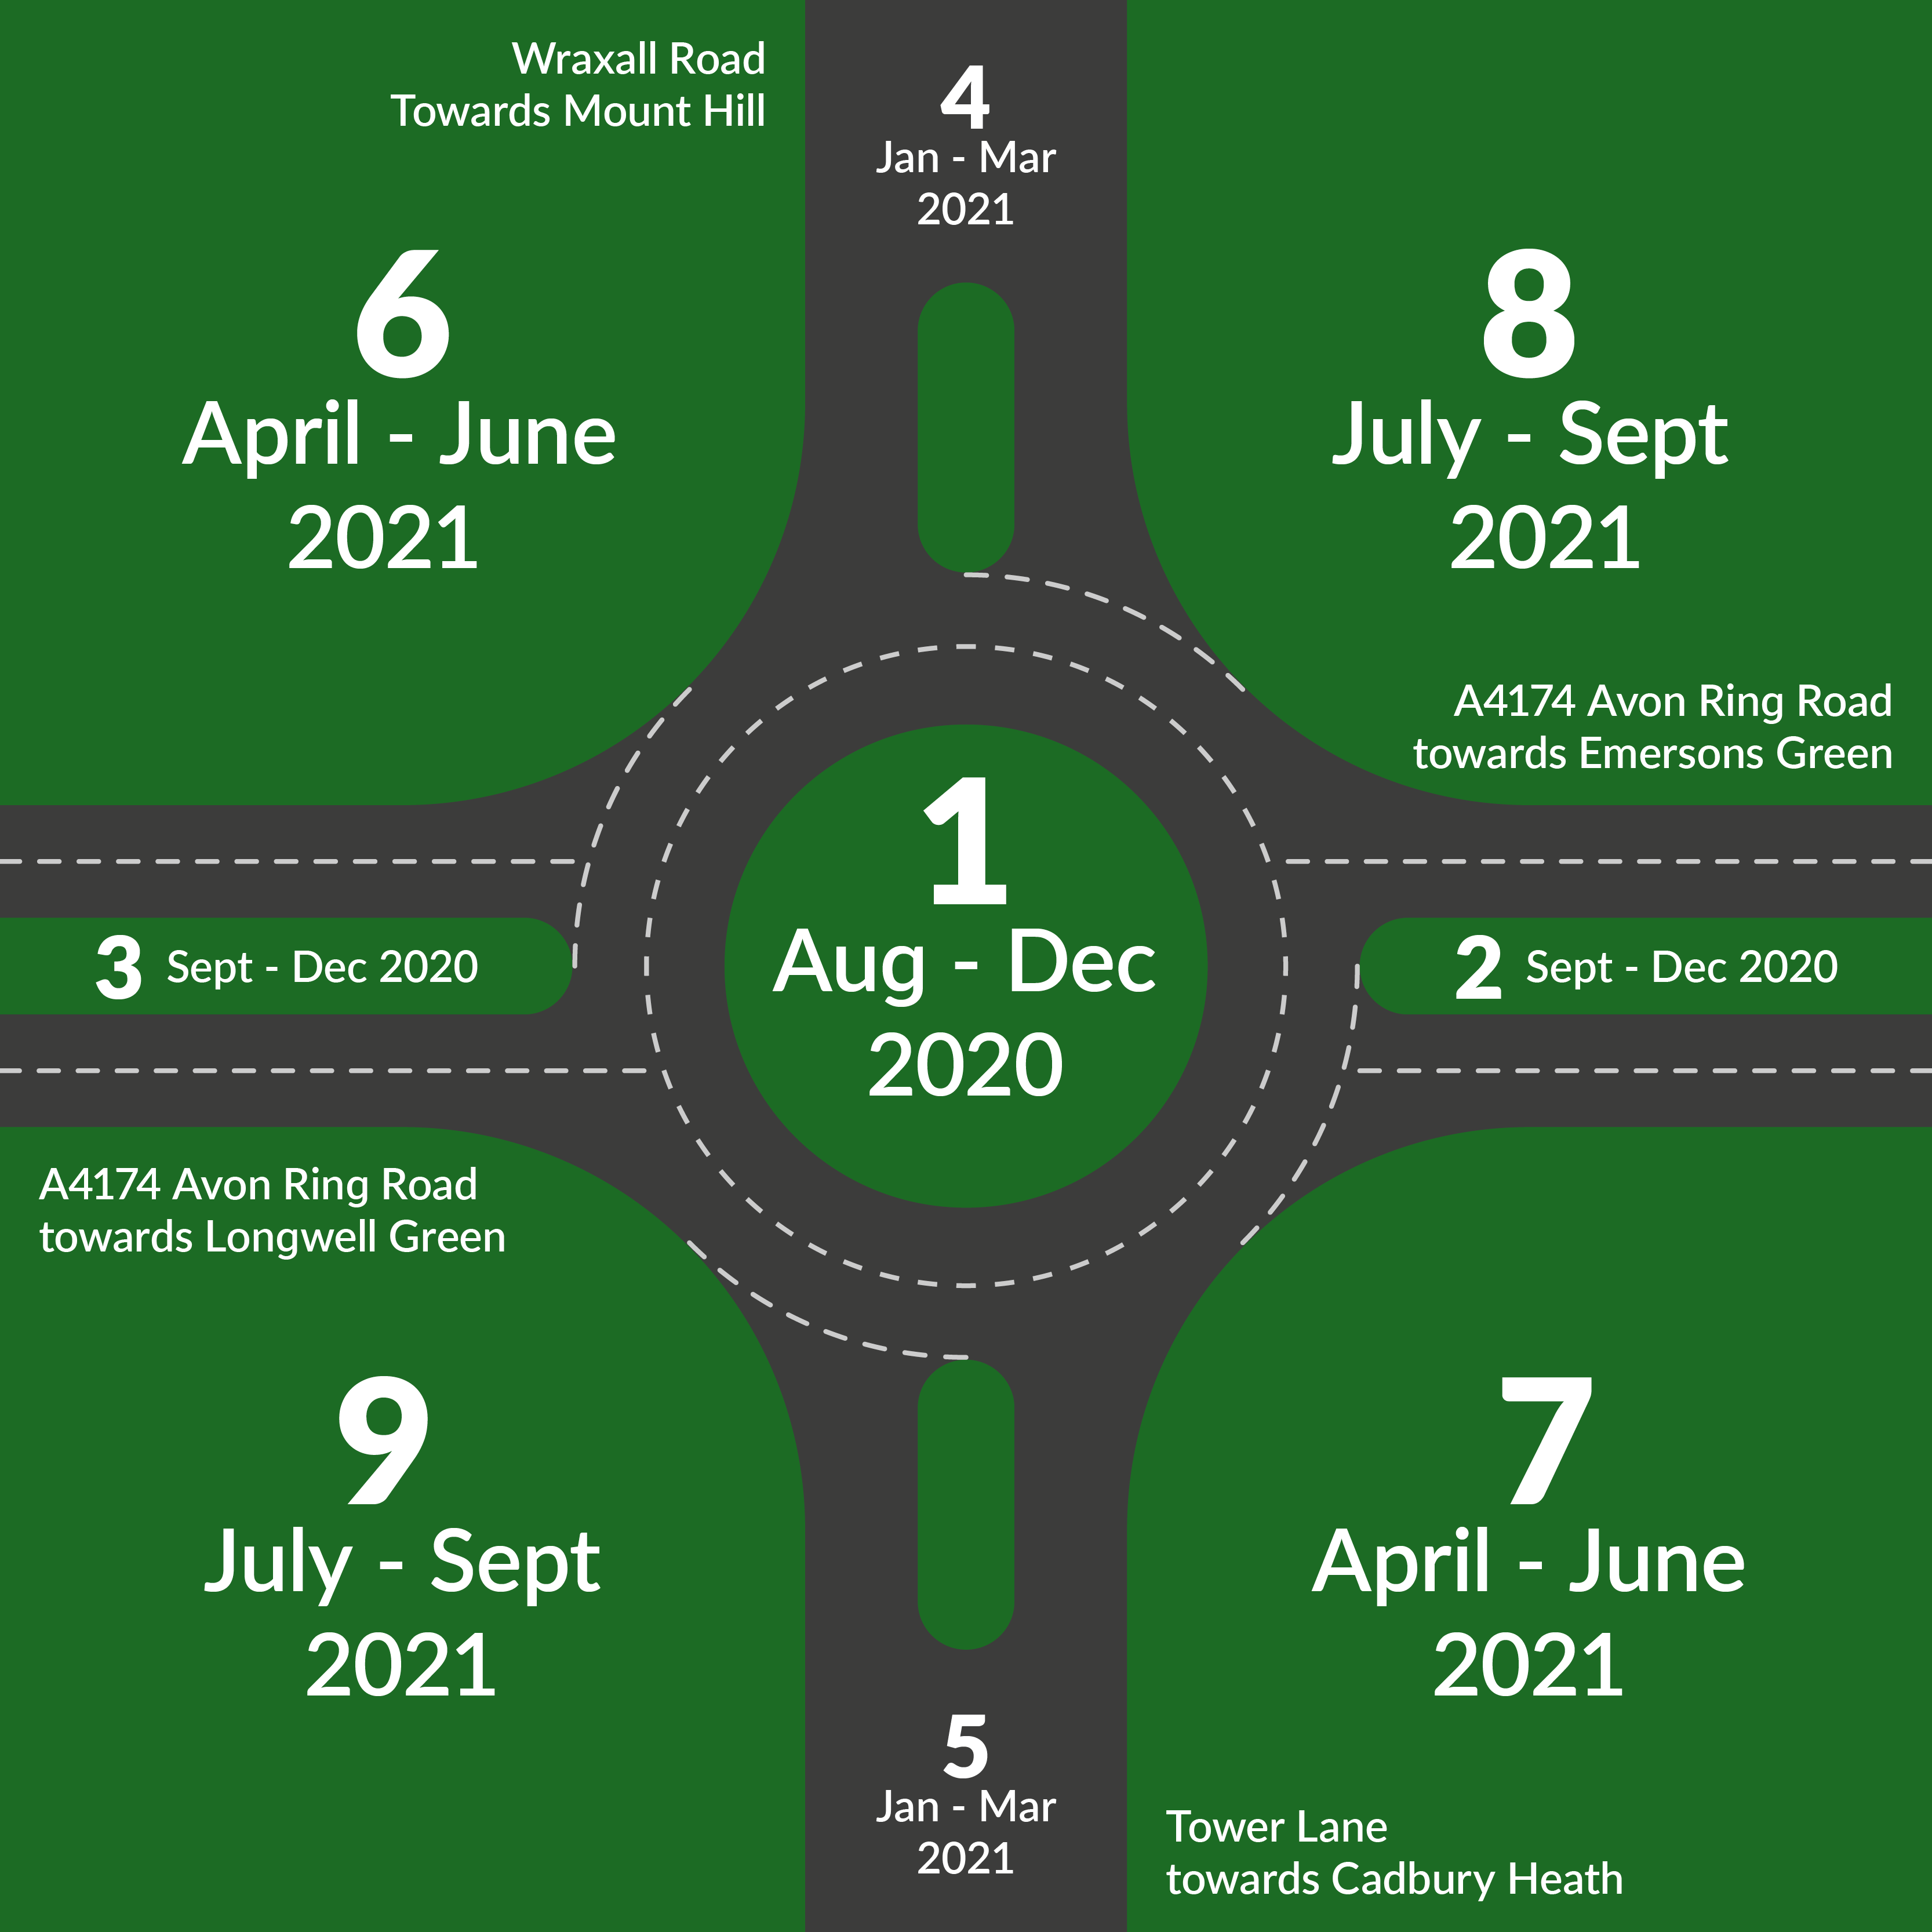 Diagram showing construction phases of the Wraxhall Road roundabout improvement scheme